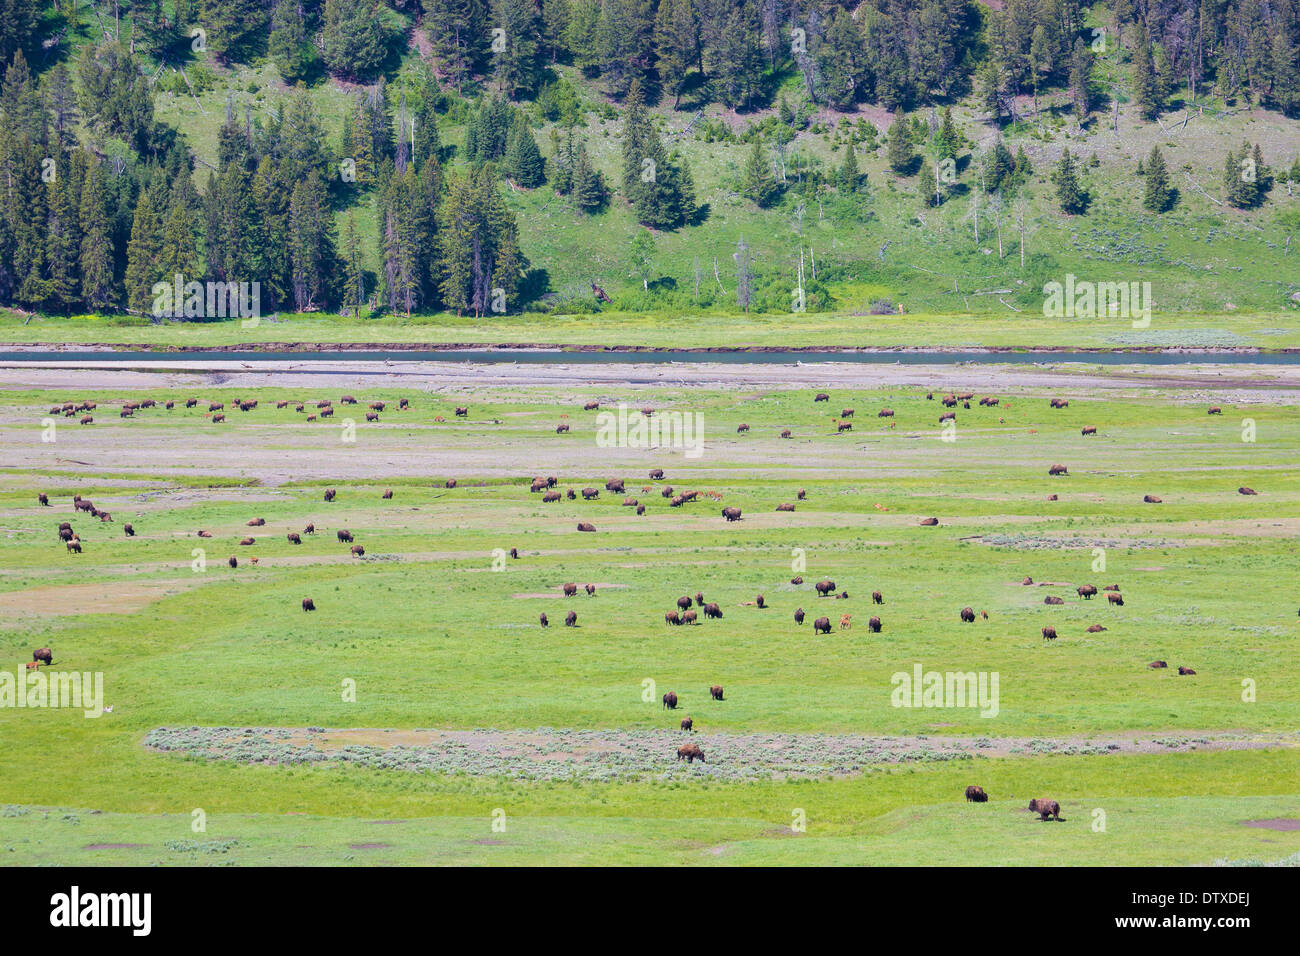 yellowstone bison - Stock Image